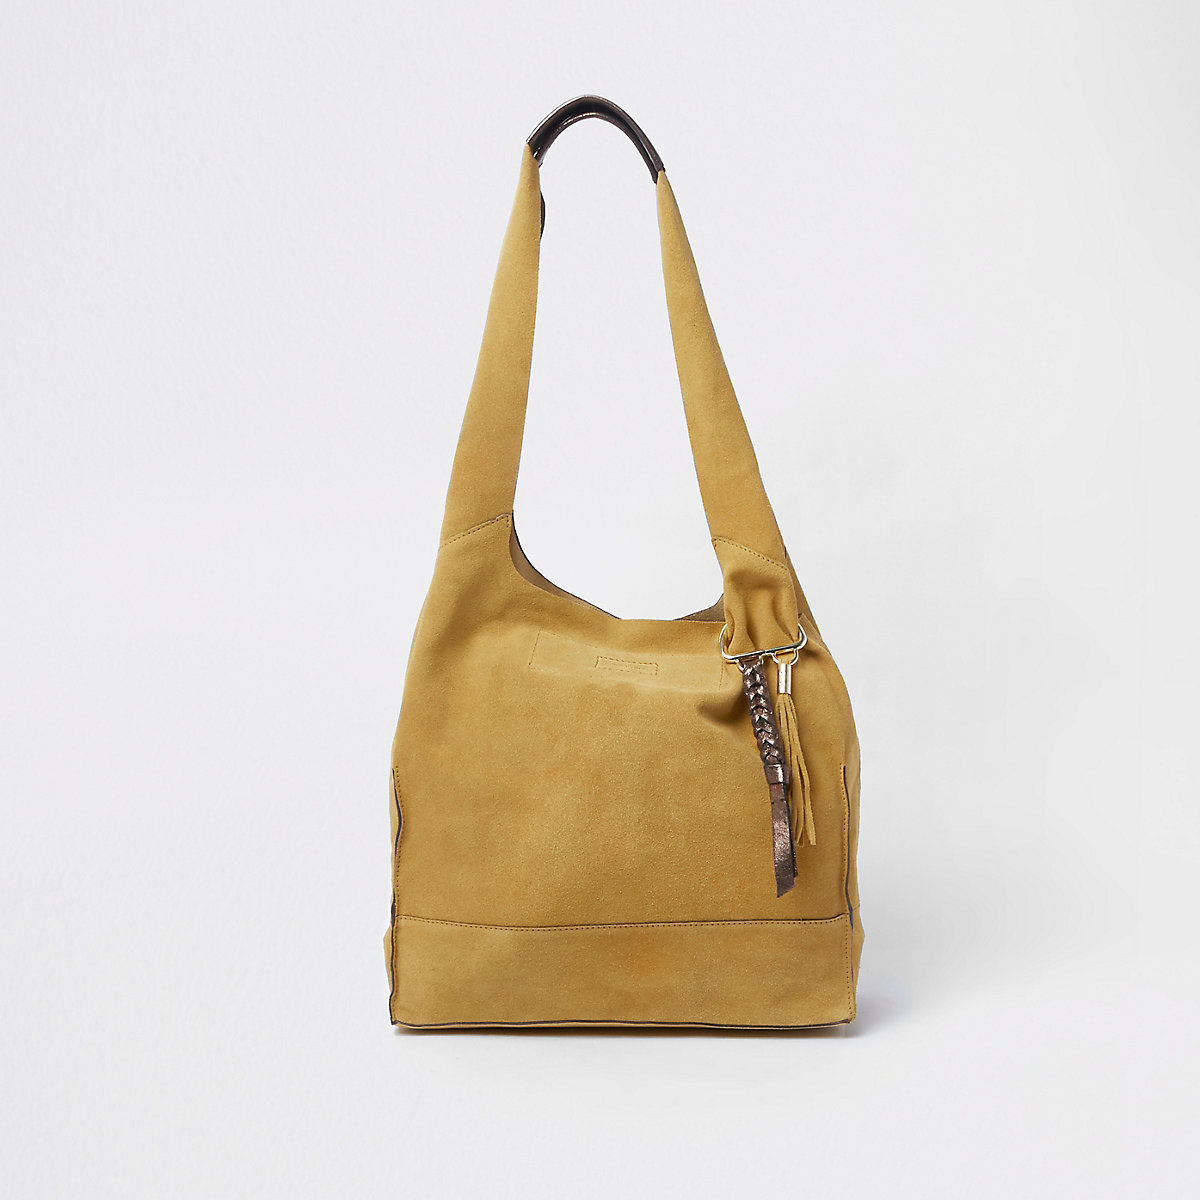 Mustard yellow suede slouch tote bag